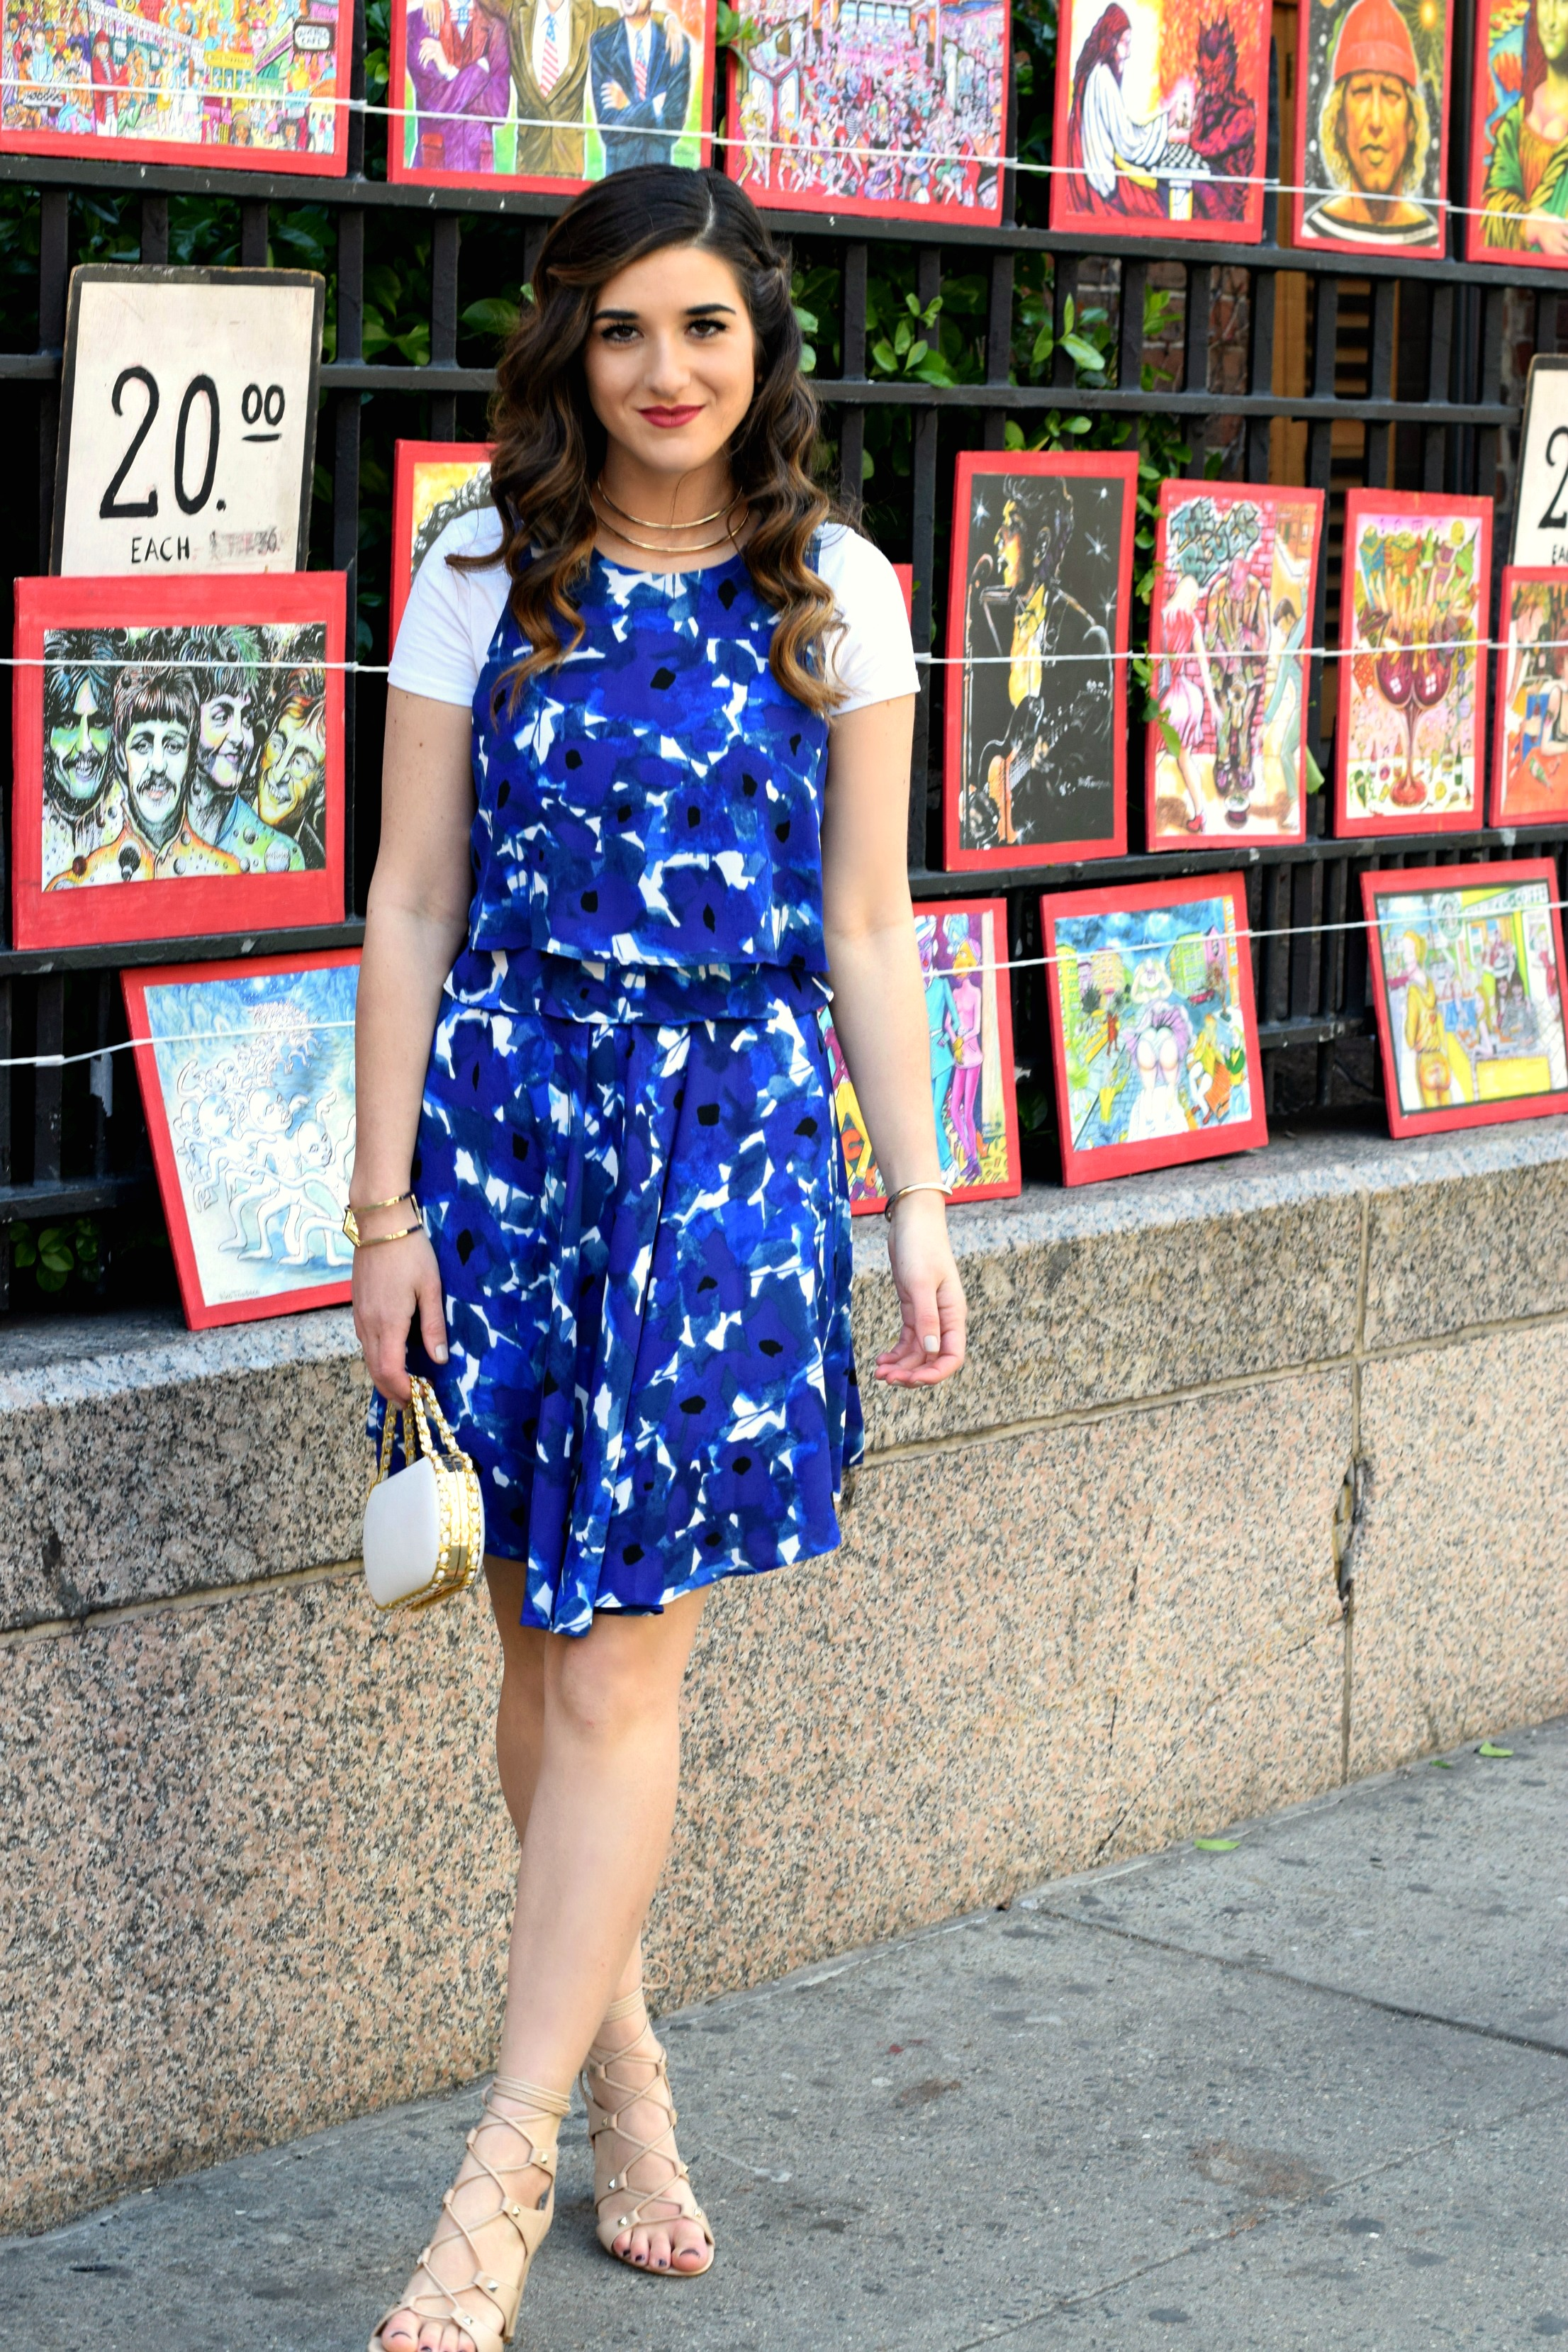 Floral Dress Lace-Up Heels Ivanka Trump Louboutins & Love Fashion Blog Esther Santer NYC Street Style Blogger Outfit OOTD Blue Pretty Girl Women Erin Dana Bag Happy Summer Spring Model New York City Sandals Shoes White Tee Gold Choker Jewerly Bracelet.jpg